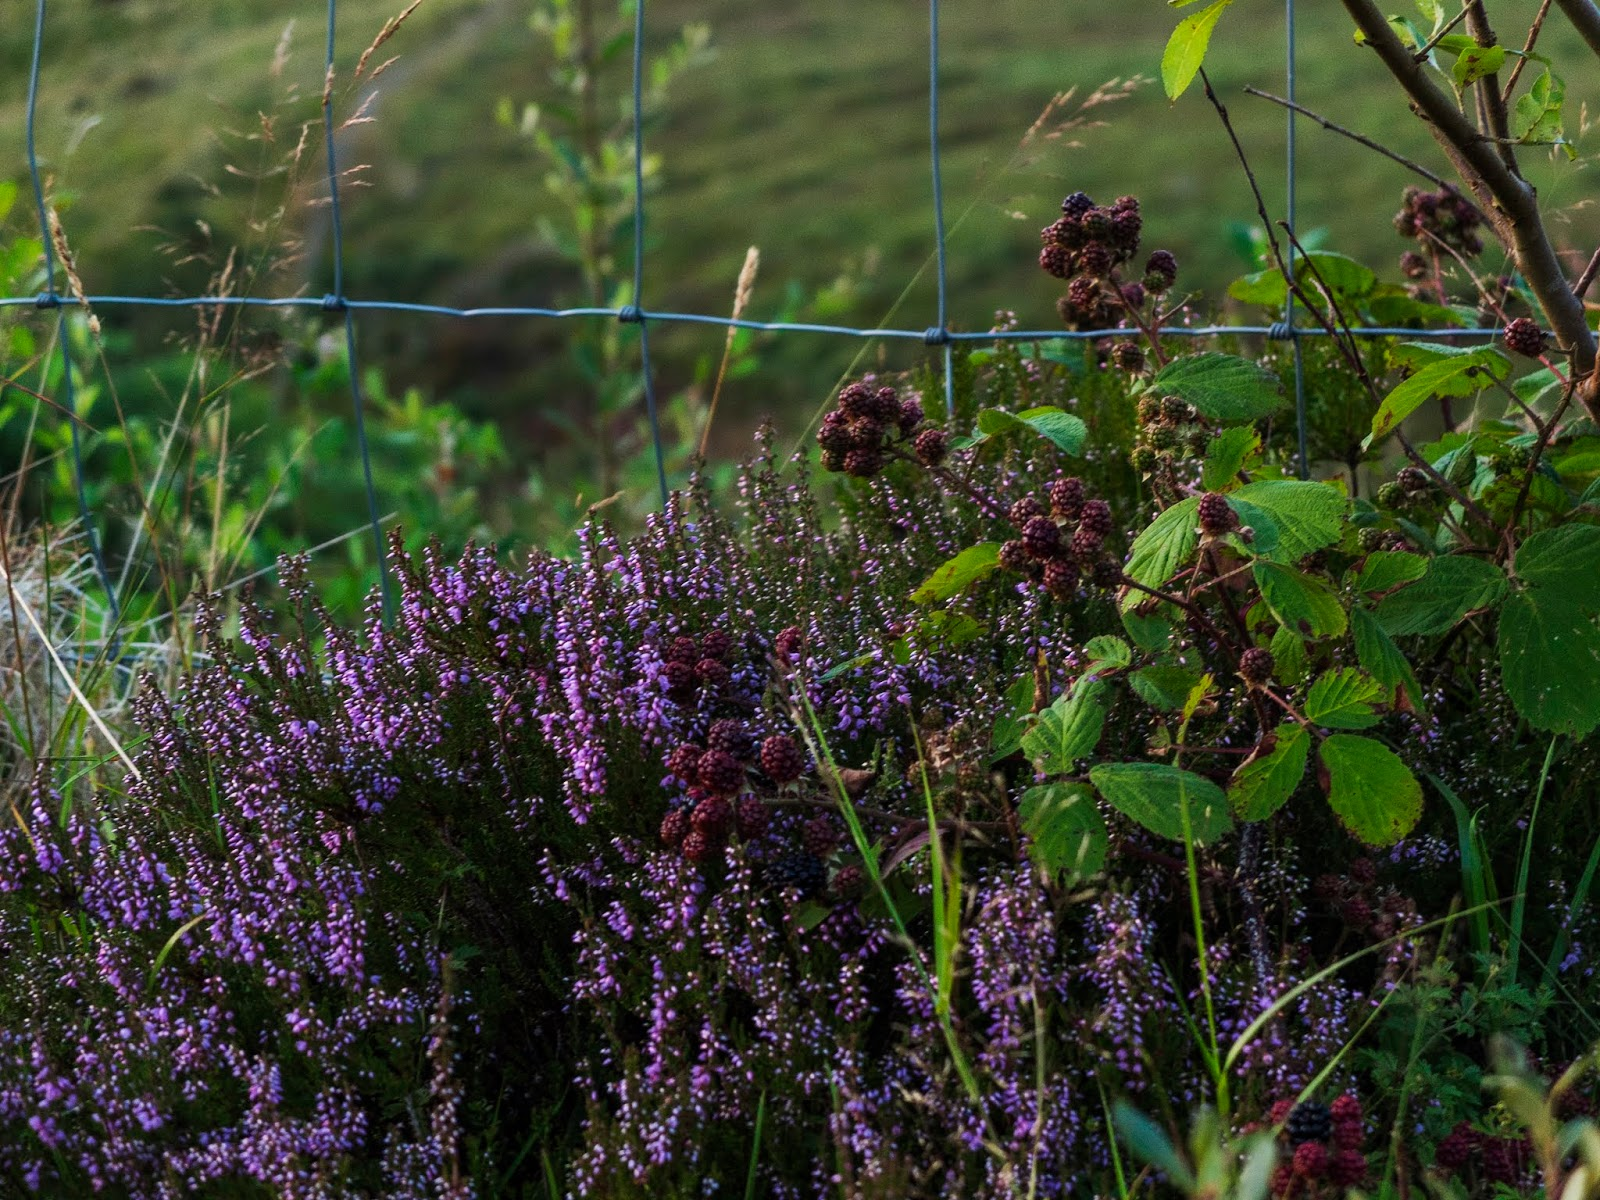 Purple heather growing with a fruiting blackberry bush.